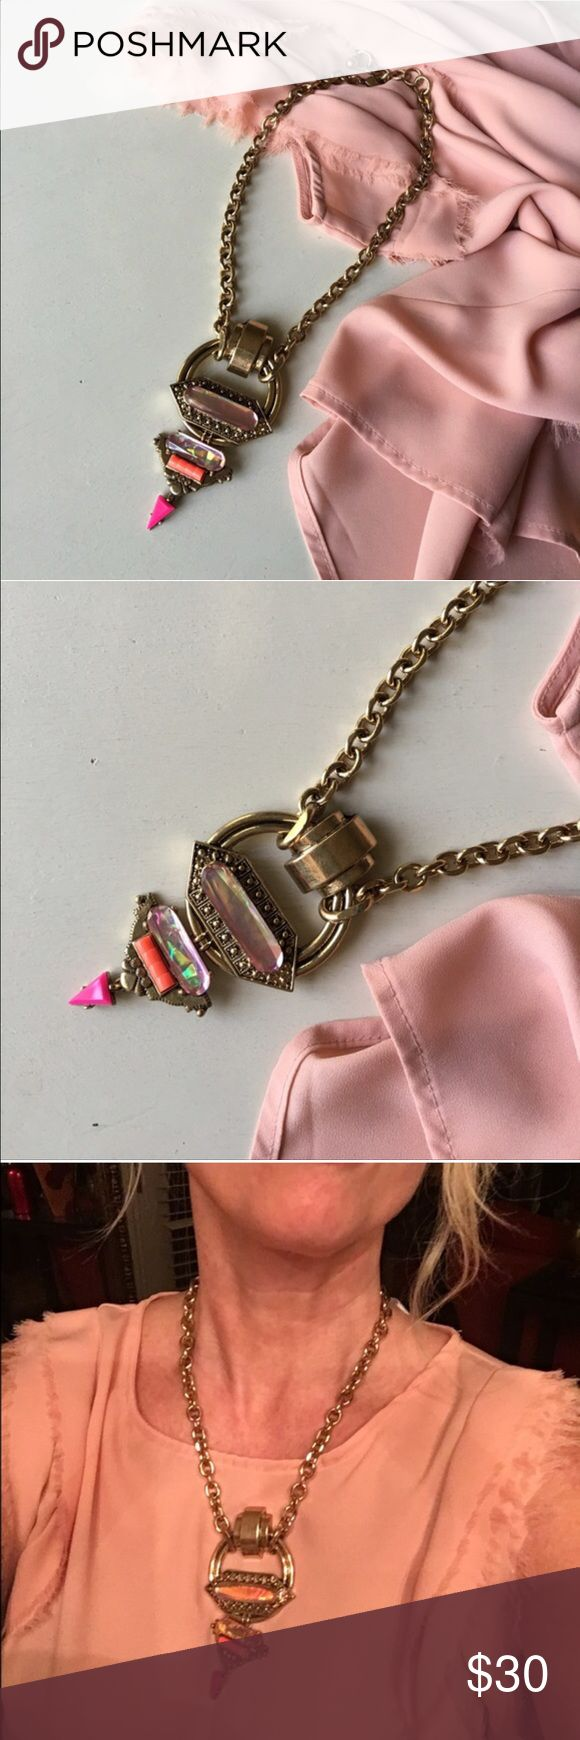 {The Rihanna}Gold Chain + Pink Gem Statement Gorgeous customer 5favorite!  ✨✨{The Rhianna} Gold chain + pink gem statement necklace. ✨Bold pop princess persona ✨Iridescent pink glass beads on a thick gold chain✨Punk meets pretty✨✨✨ Ask me to create a custom bundle of 3 or more items for the best pricing ✨✨Restocked! ✨Go for it! ✨ Jewelry Necklaces